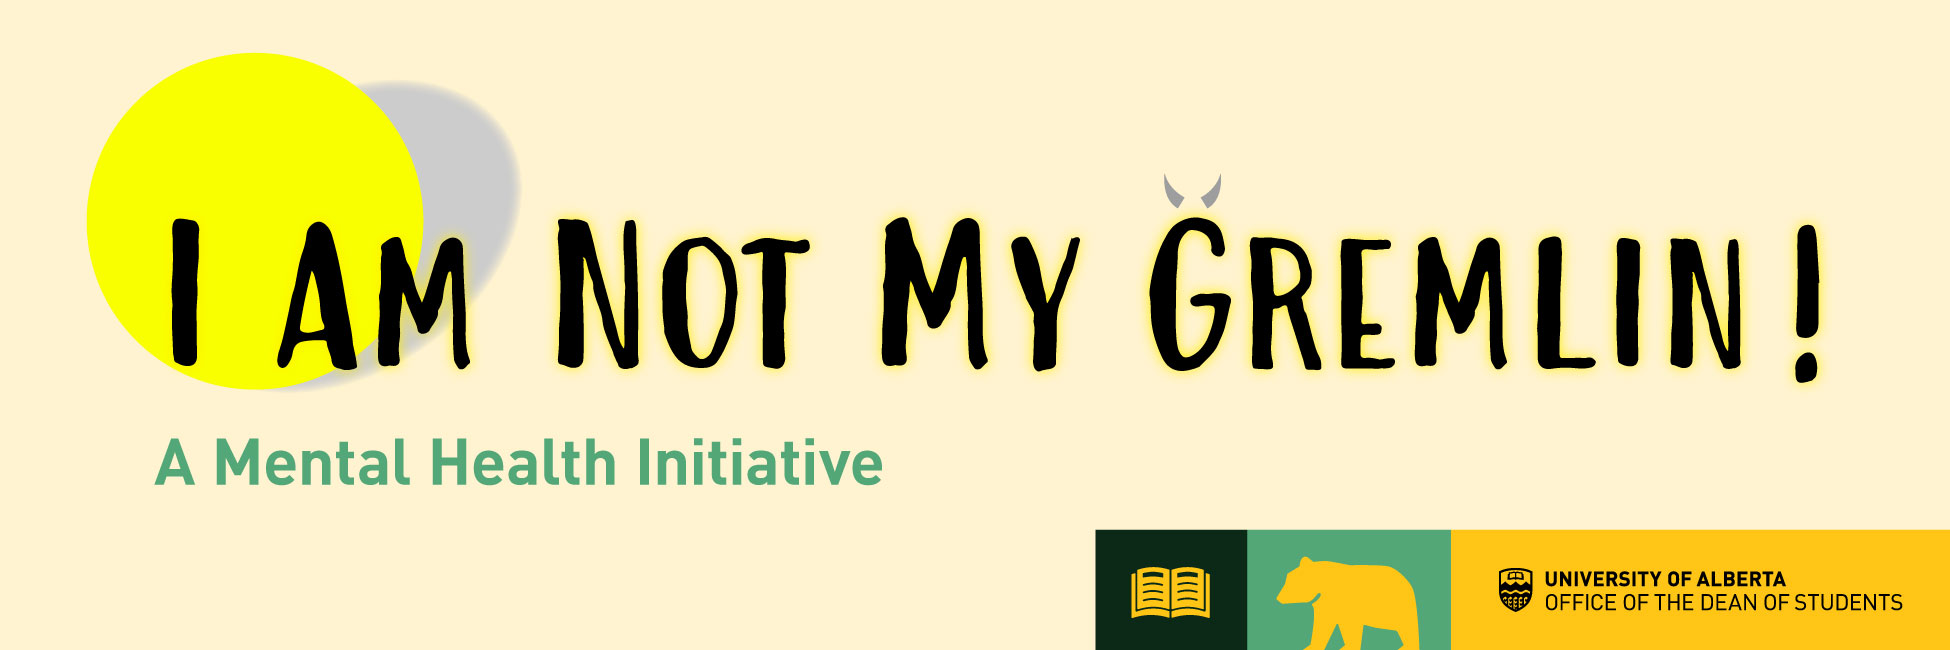 I am not my gremlin web banner